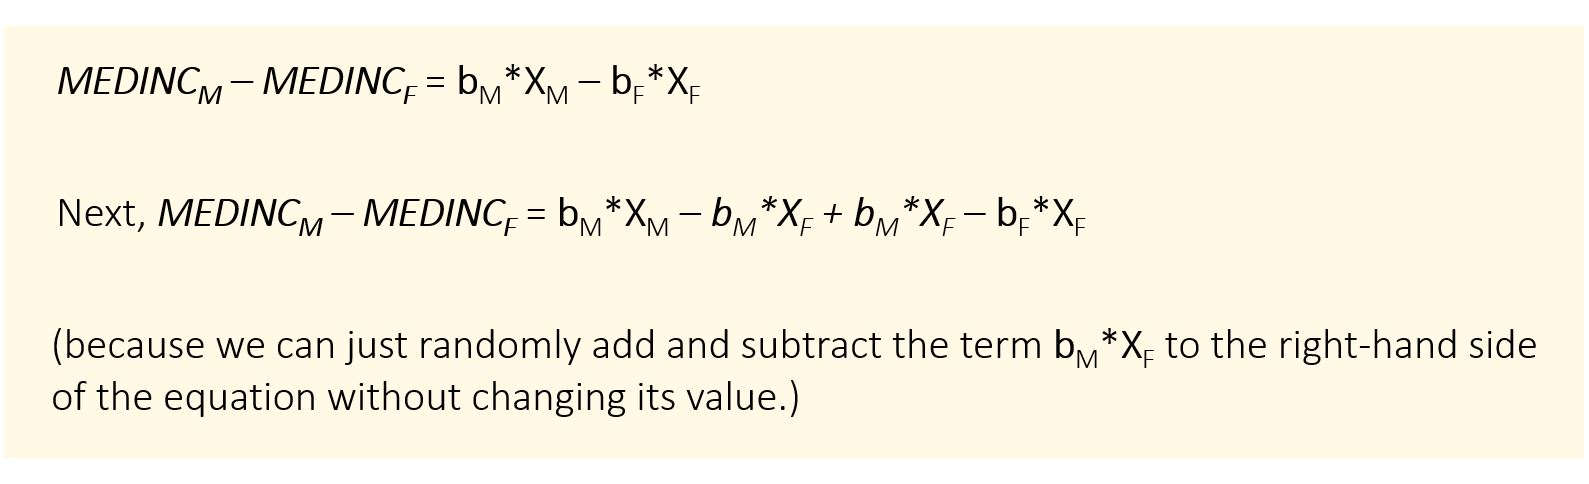 MEDINCM – MEDINCF = bM*XM – bF*XF Next, MEDINCM – MEDINCF = bM*XM – bM*XF + bM*XF – bF*XF (because we can just randomly add and subtract the term bM*XF to the right-hand side of the equation without changing its value.)